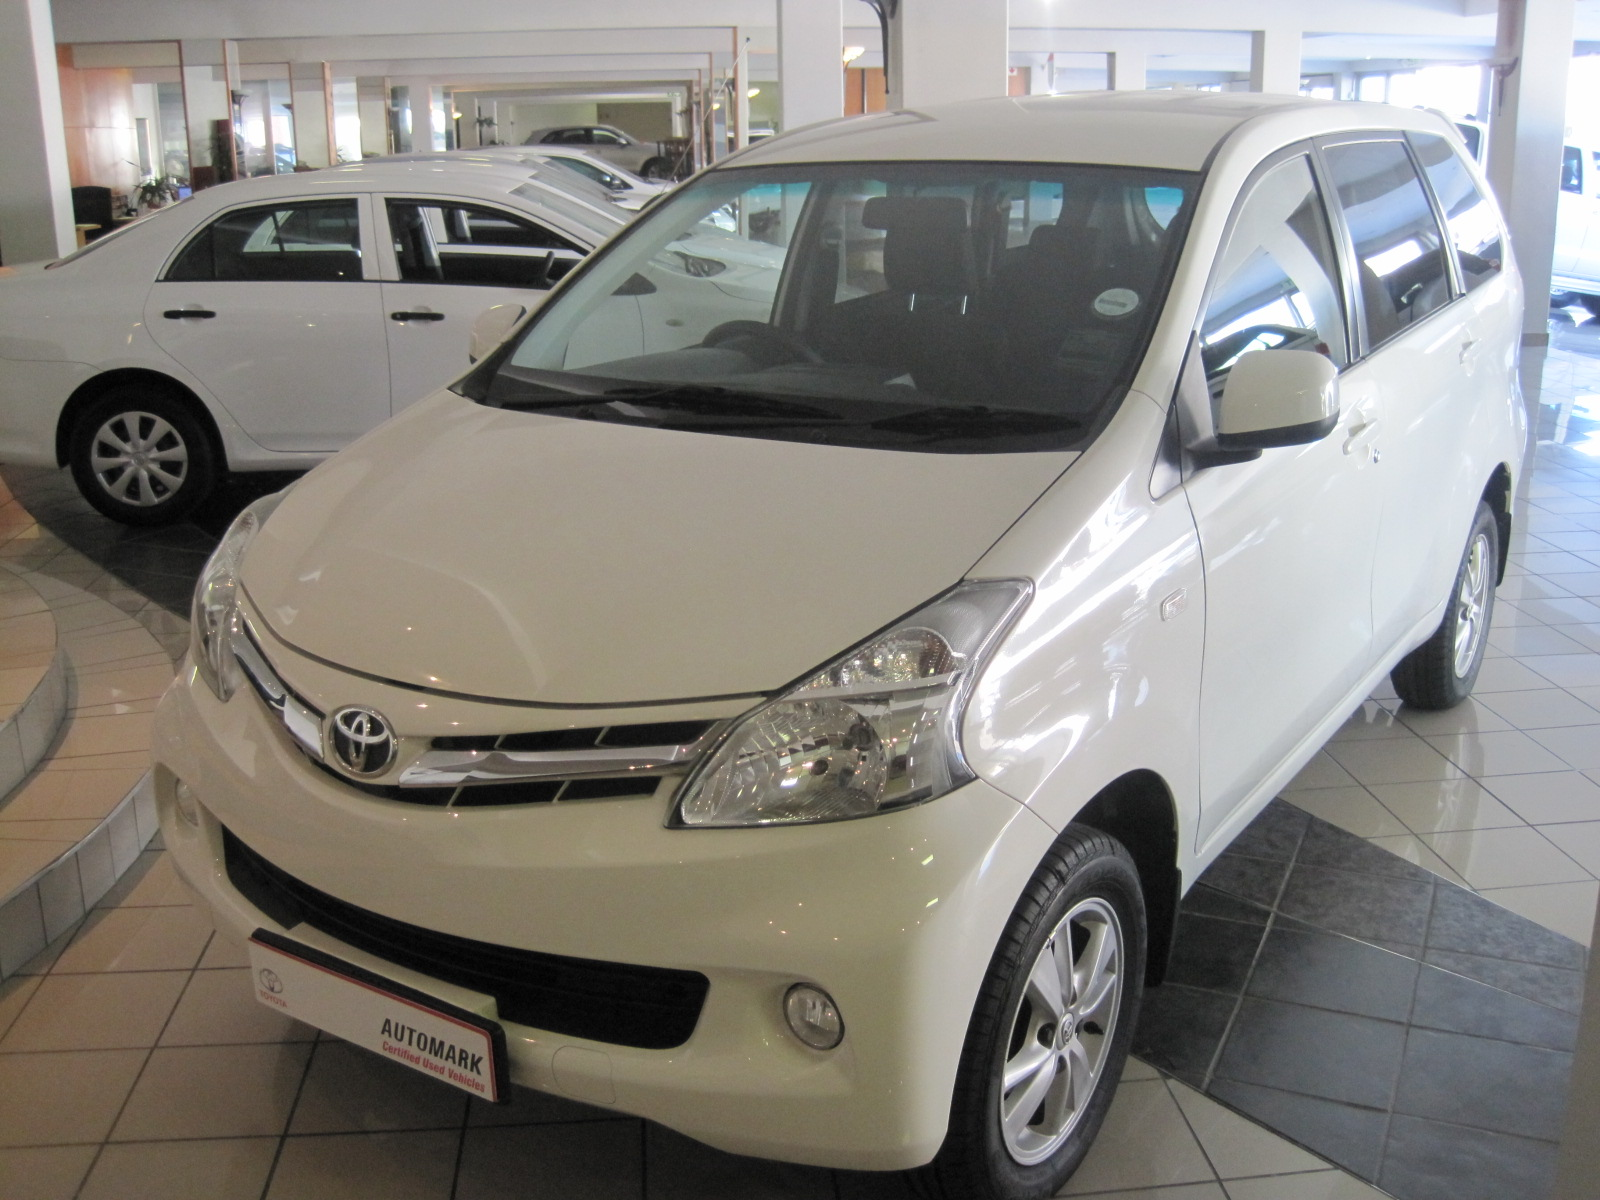 Cars For Sale By Olx Fresh Used And New Hyundai Gumtree Used